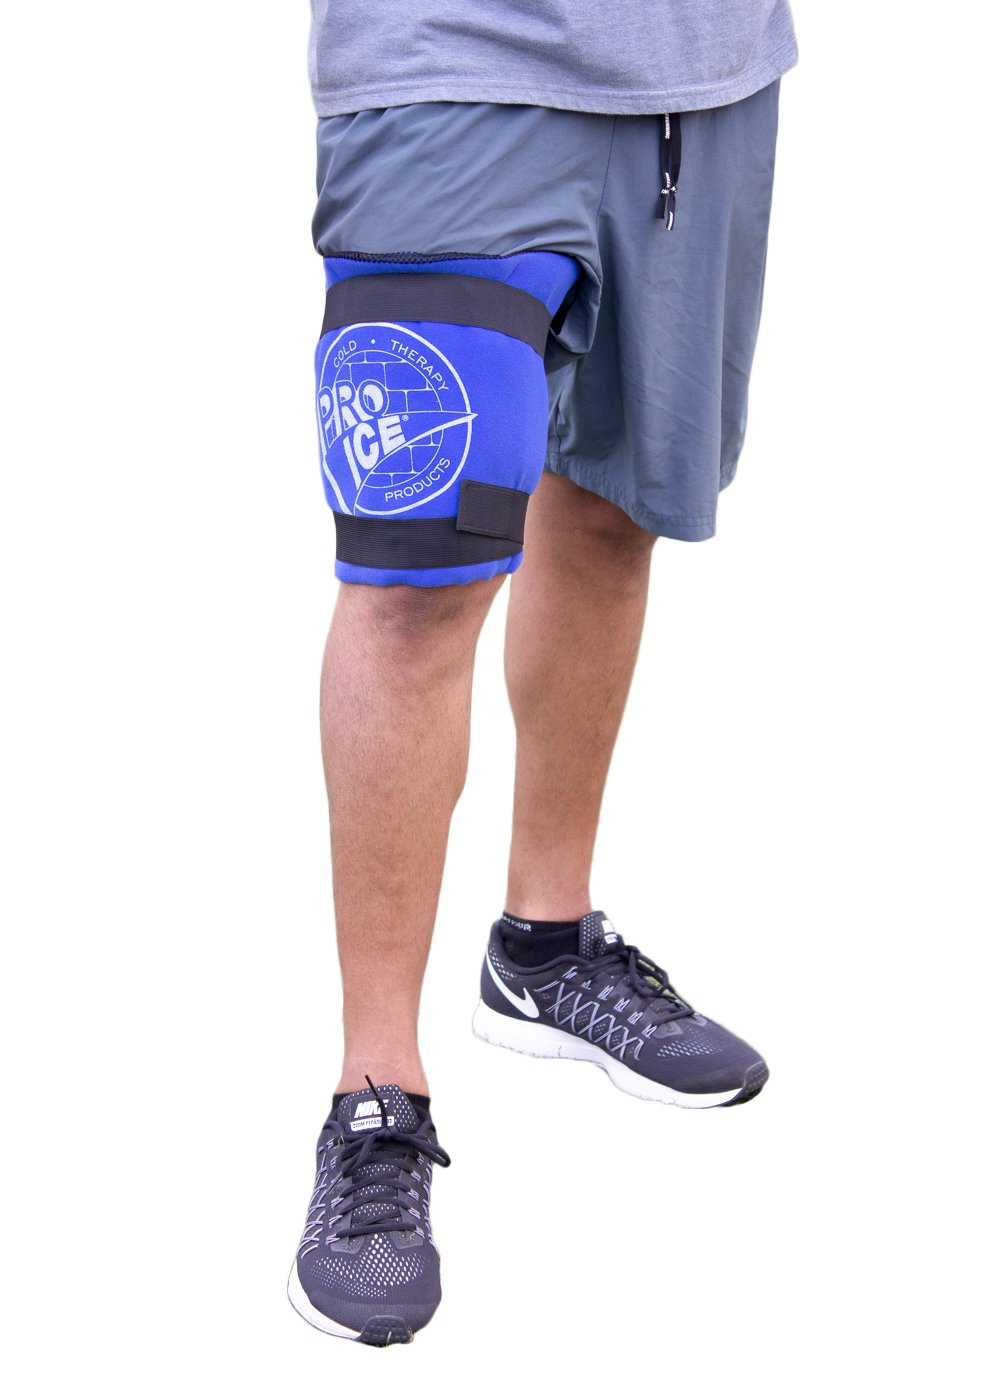 Knee/Multi Purpose Ice Cold Therapy Wrap - Gives Therapeutic Icing & Compression for Sports Injuries or Post-Op Treatment. Allows Long Lasting Cooling Effect. Use PI 400 on Either Knee by Pro Ice